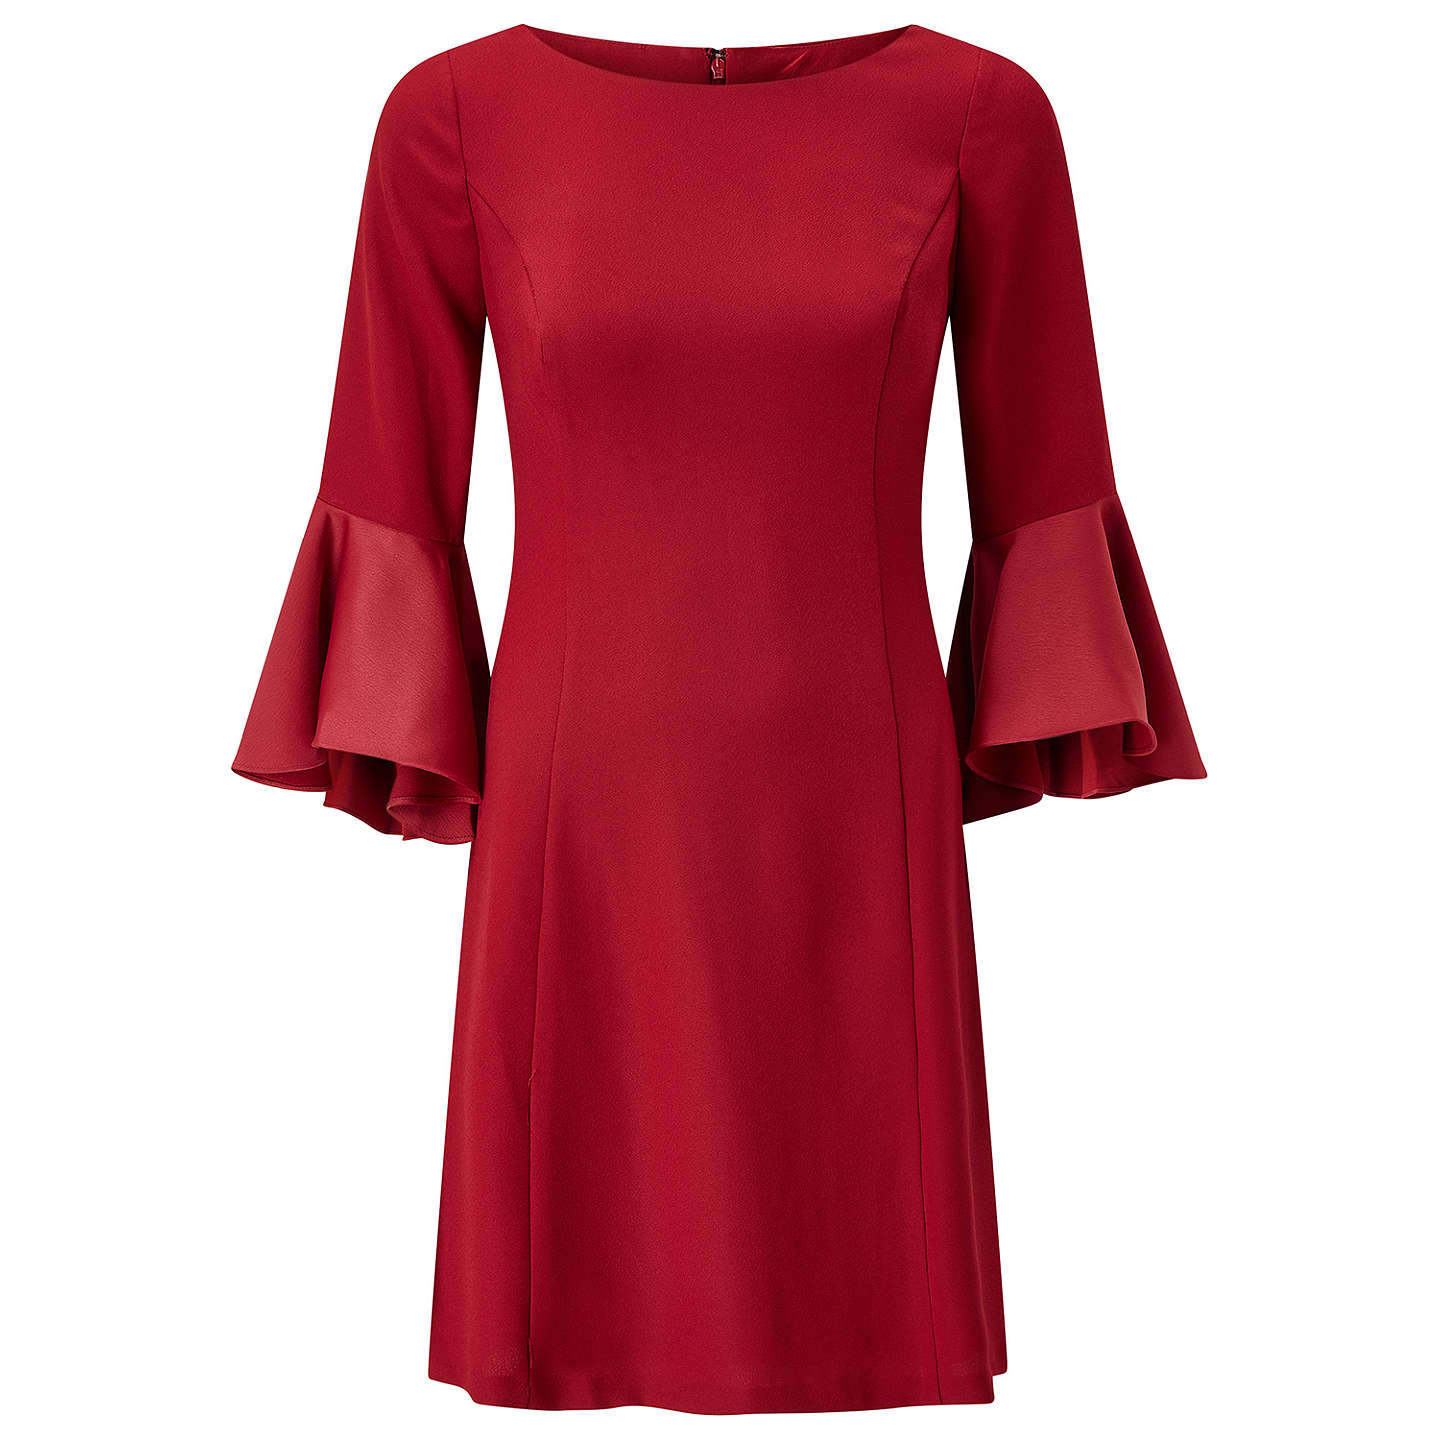 BuyAdrianna Papell Crepe-Back Satin Dress, Matador Red, 8 Online at johnlewis.com